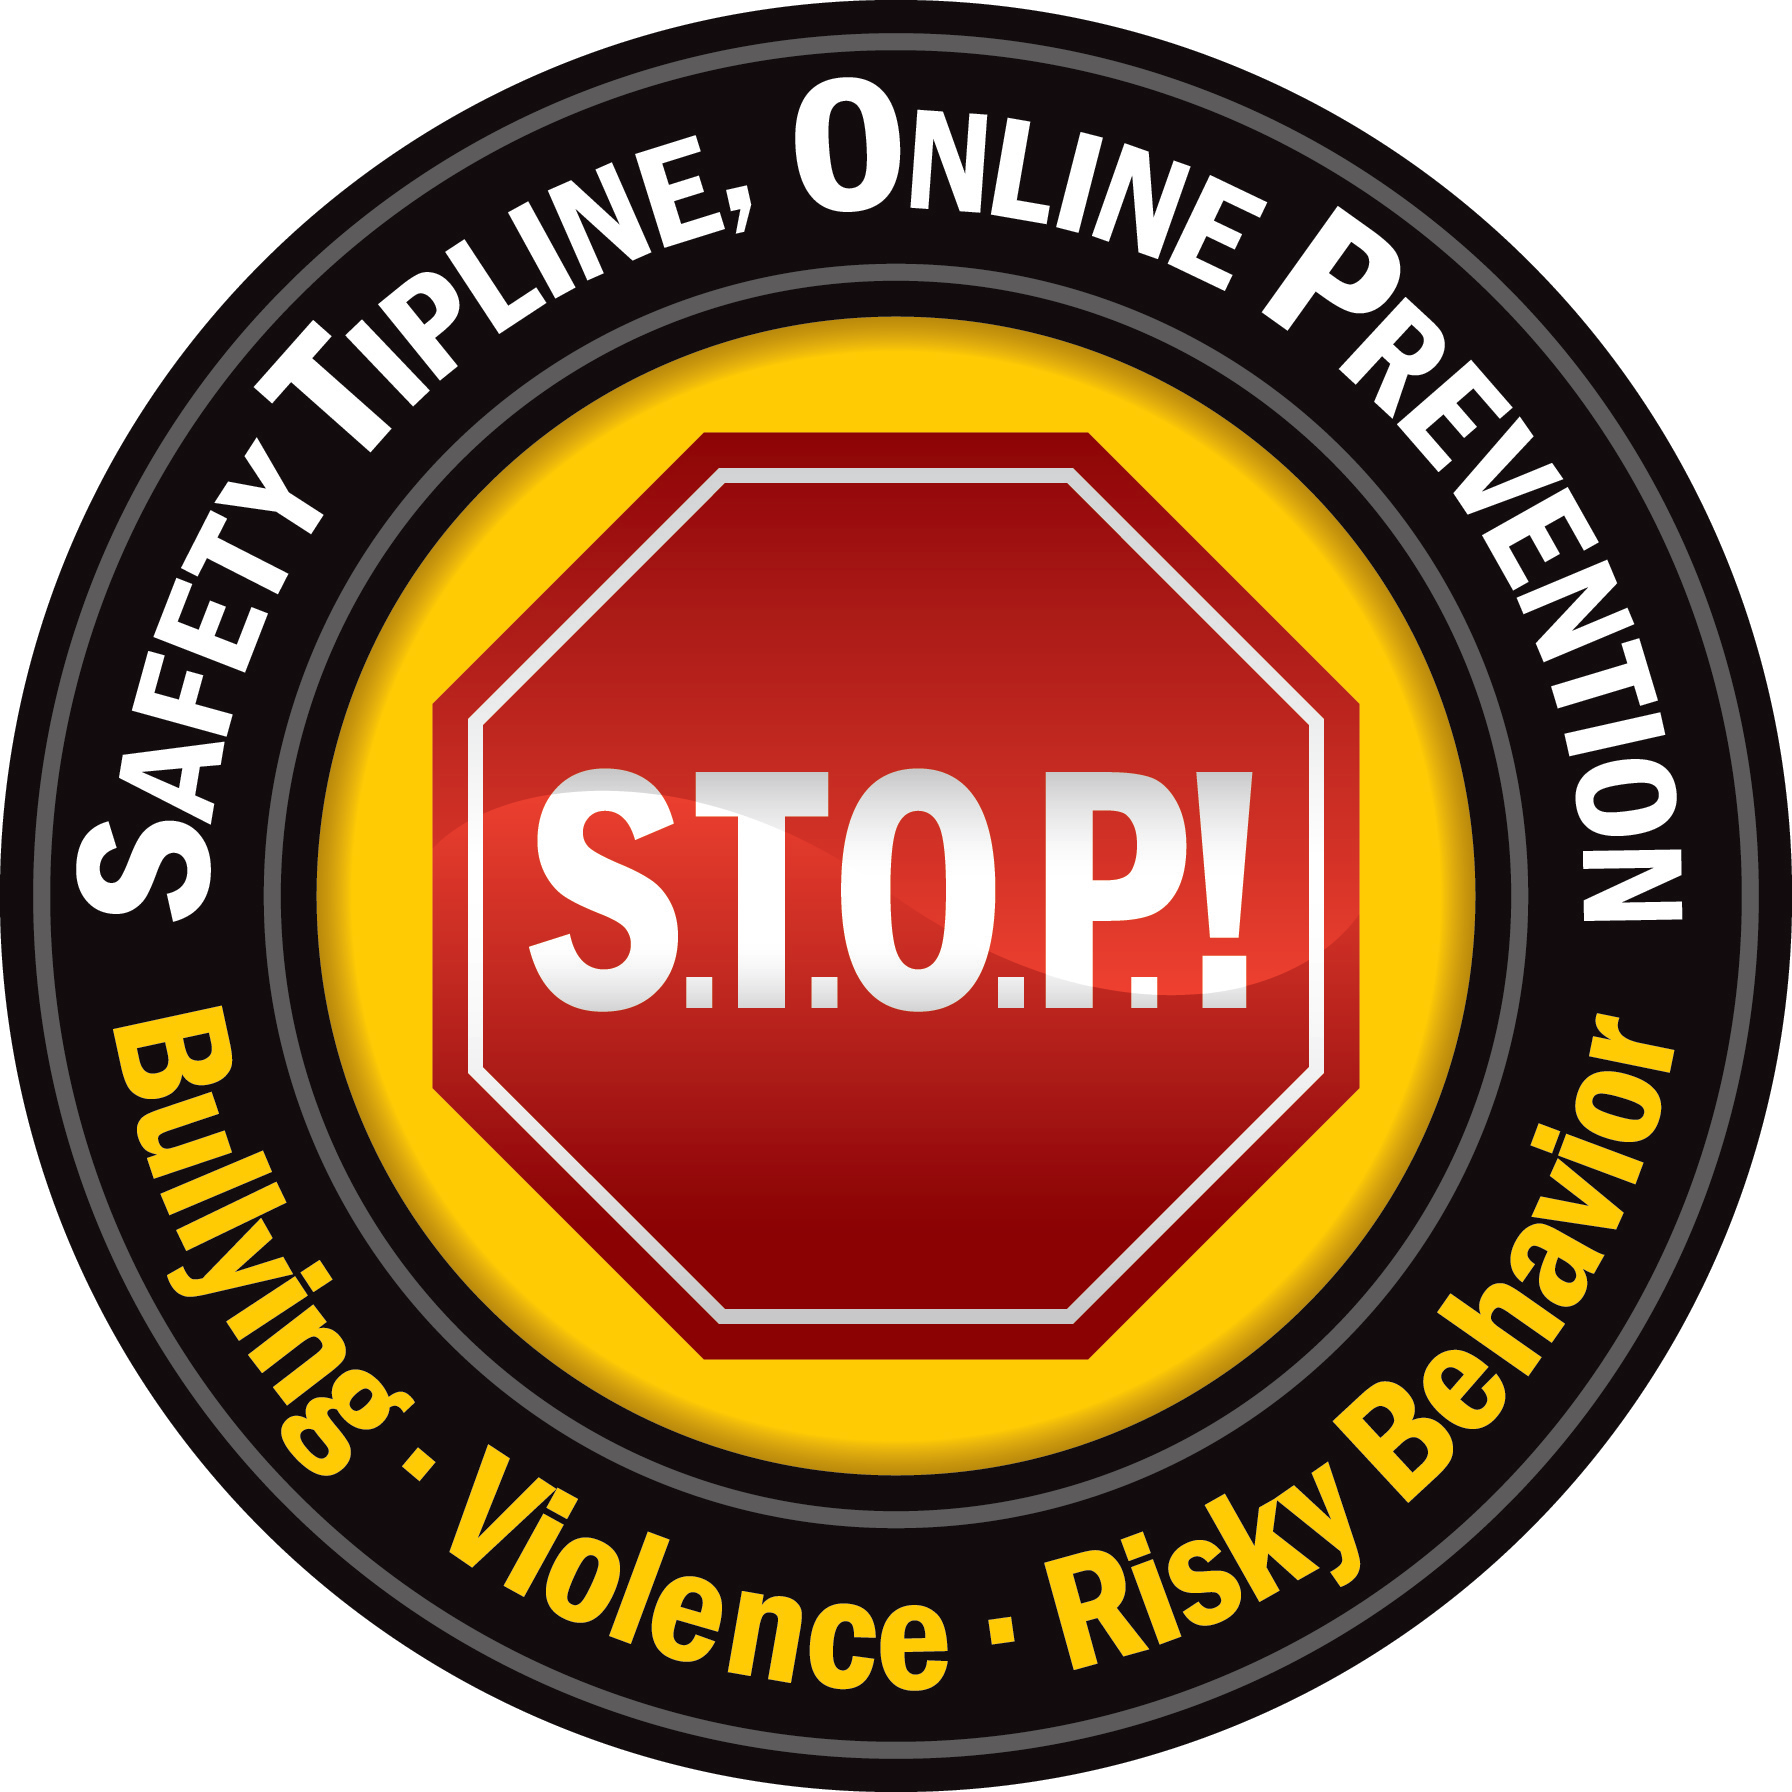 Safety Tipline Online Prevention, Bullying, Violence, Risky Beh